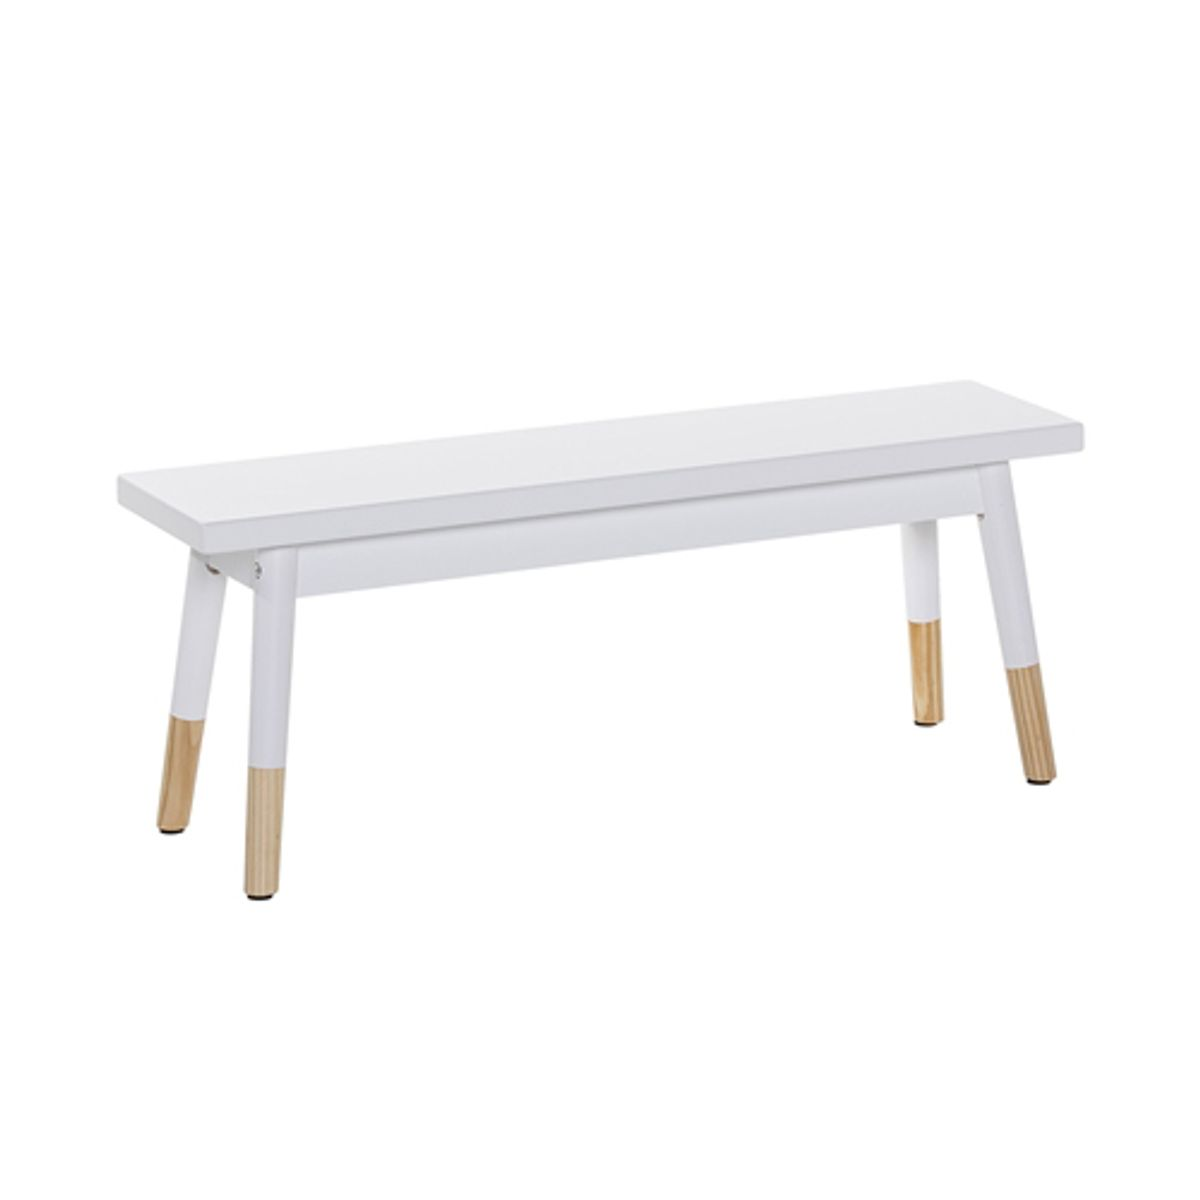 Banc enfant en pin blanc et naturel Bloomingville